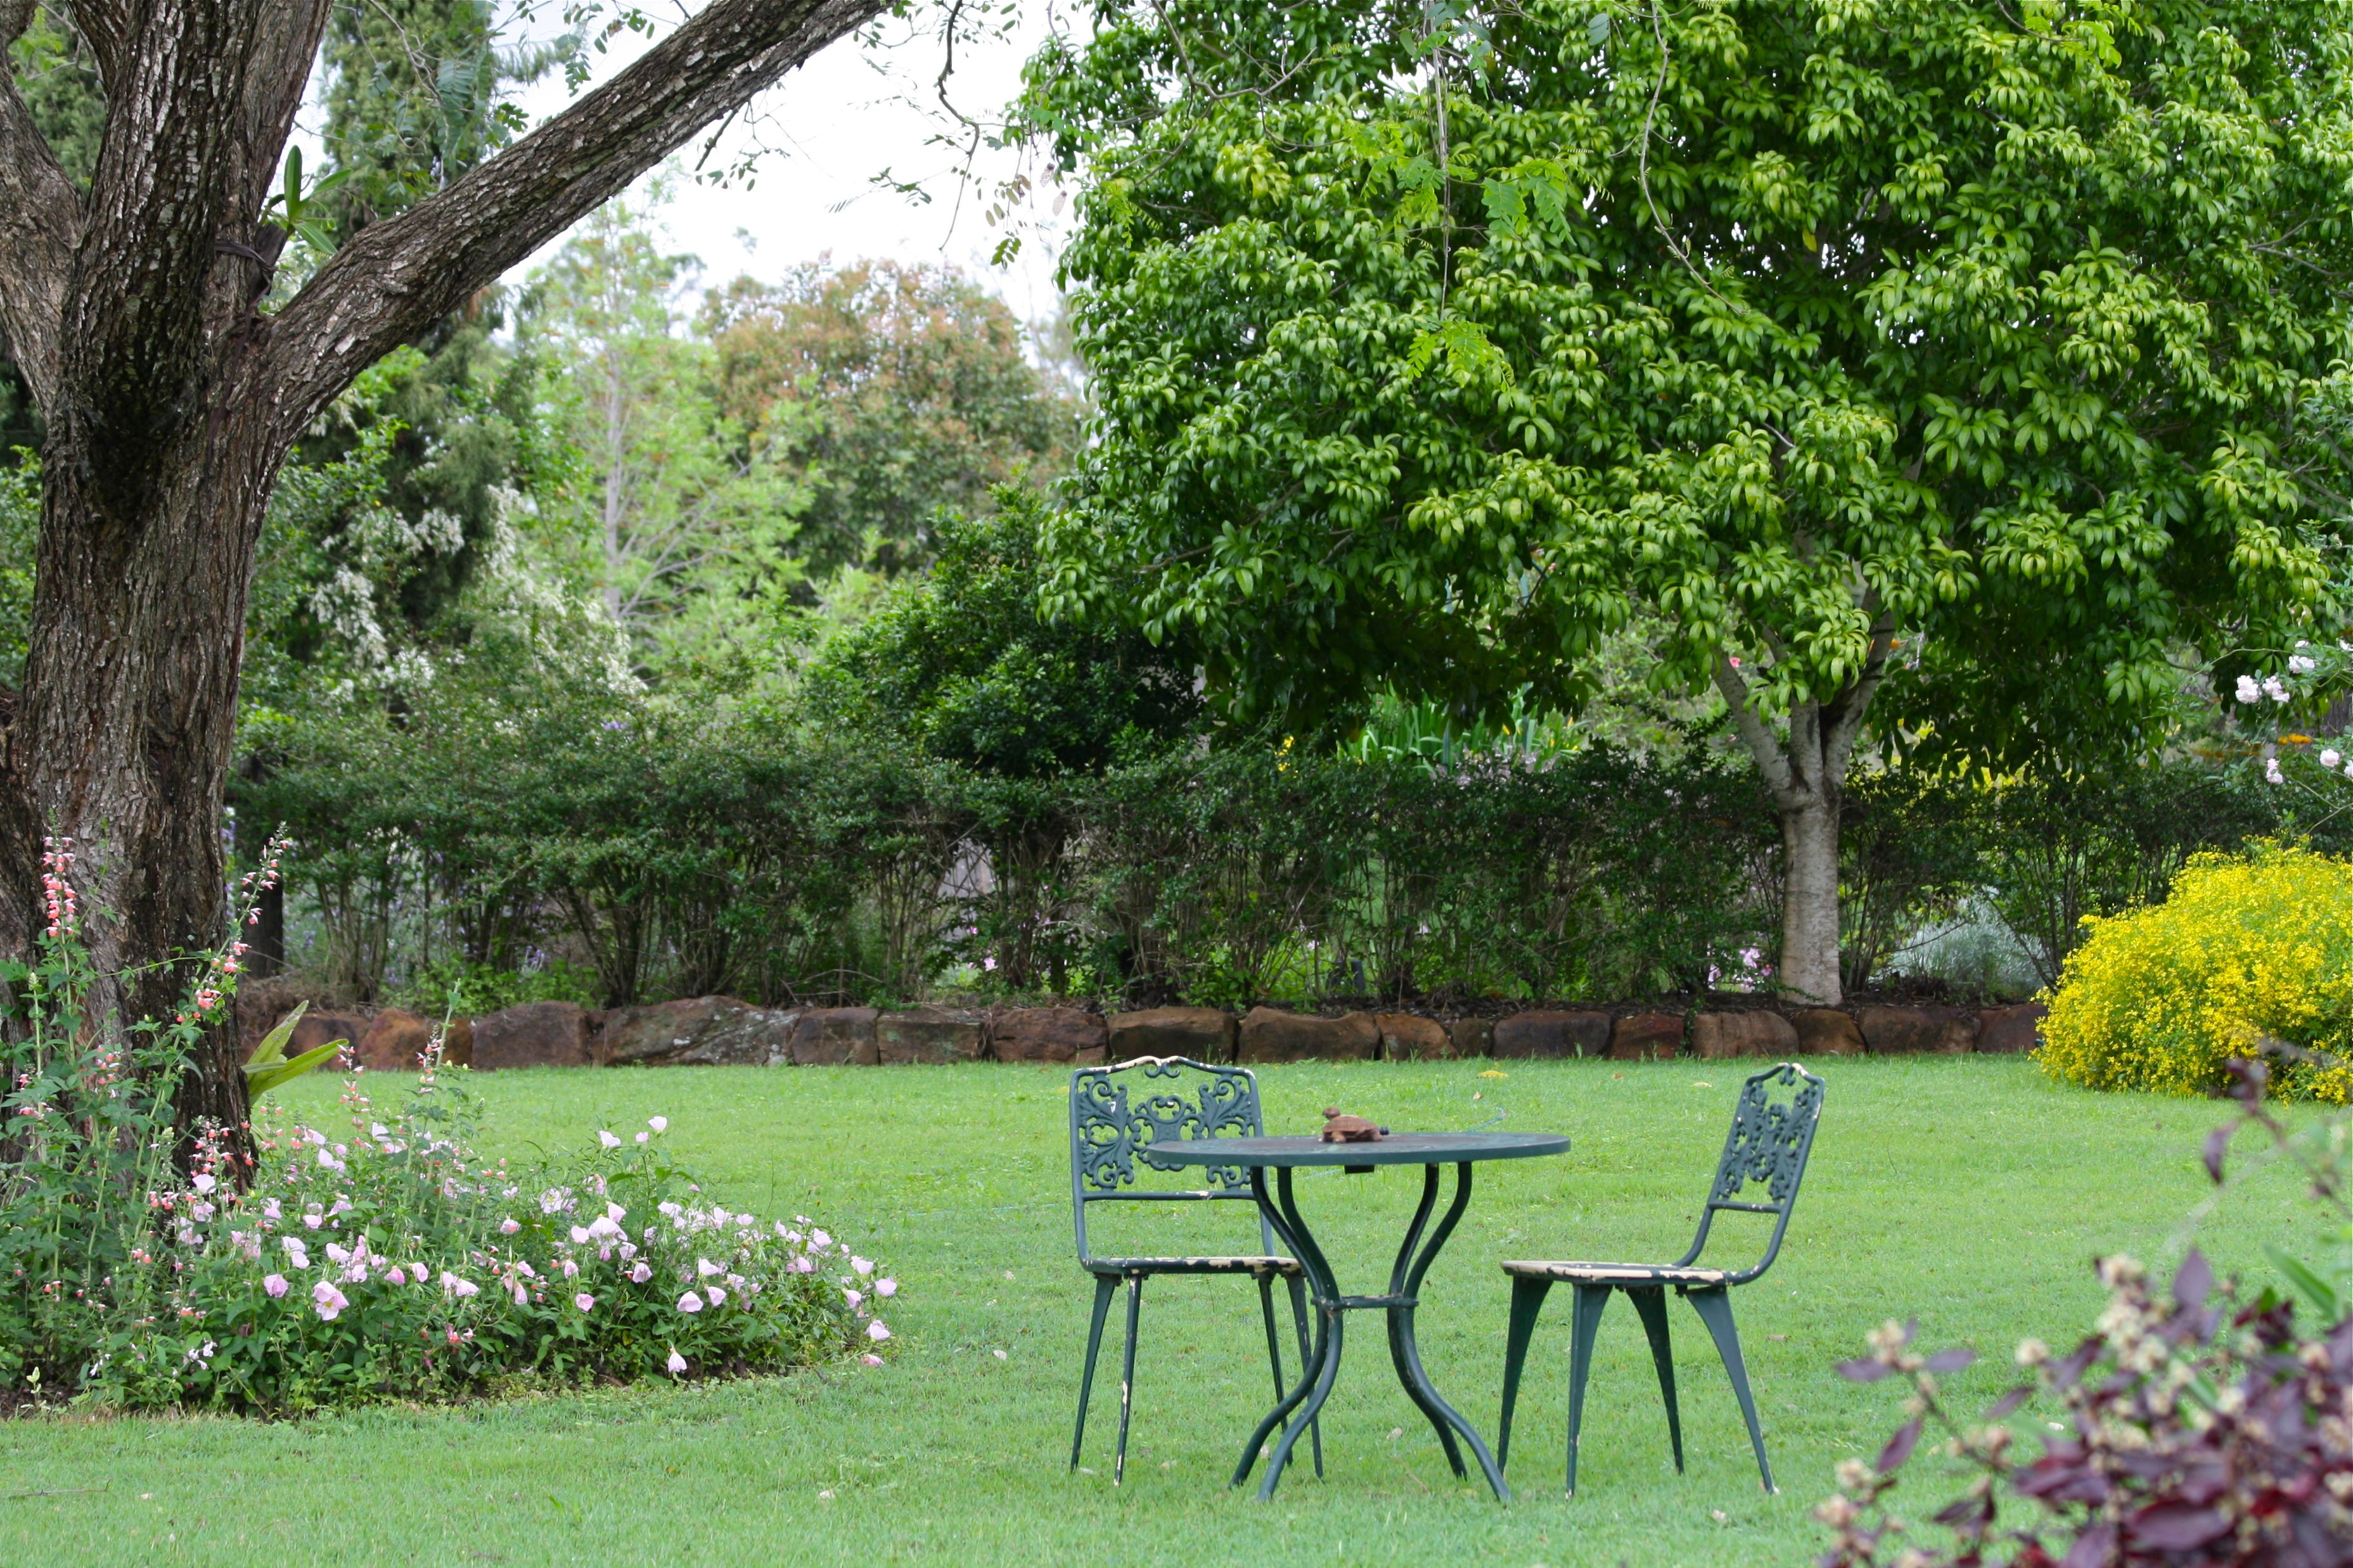 Garden landscape trees  lawn with trees  Mendocino landscaping ideas  Pinterest